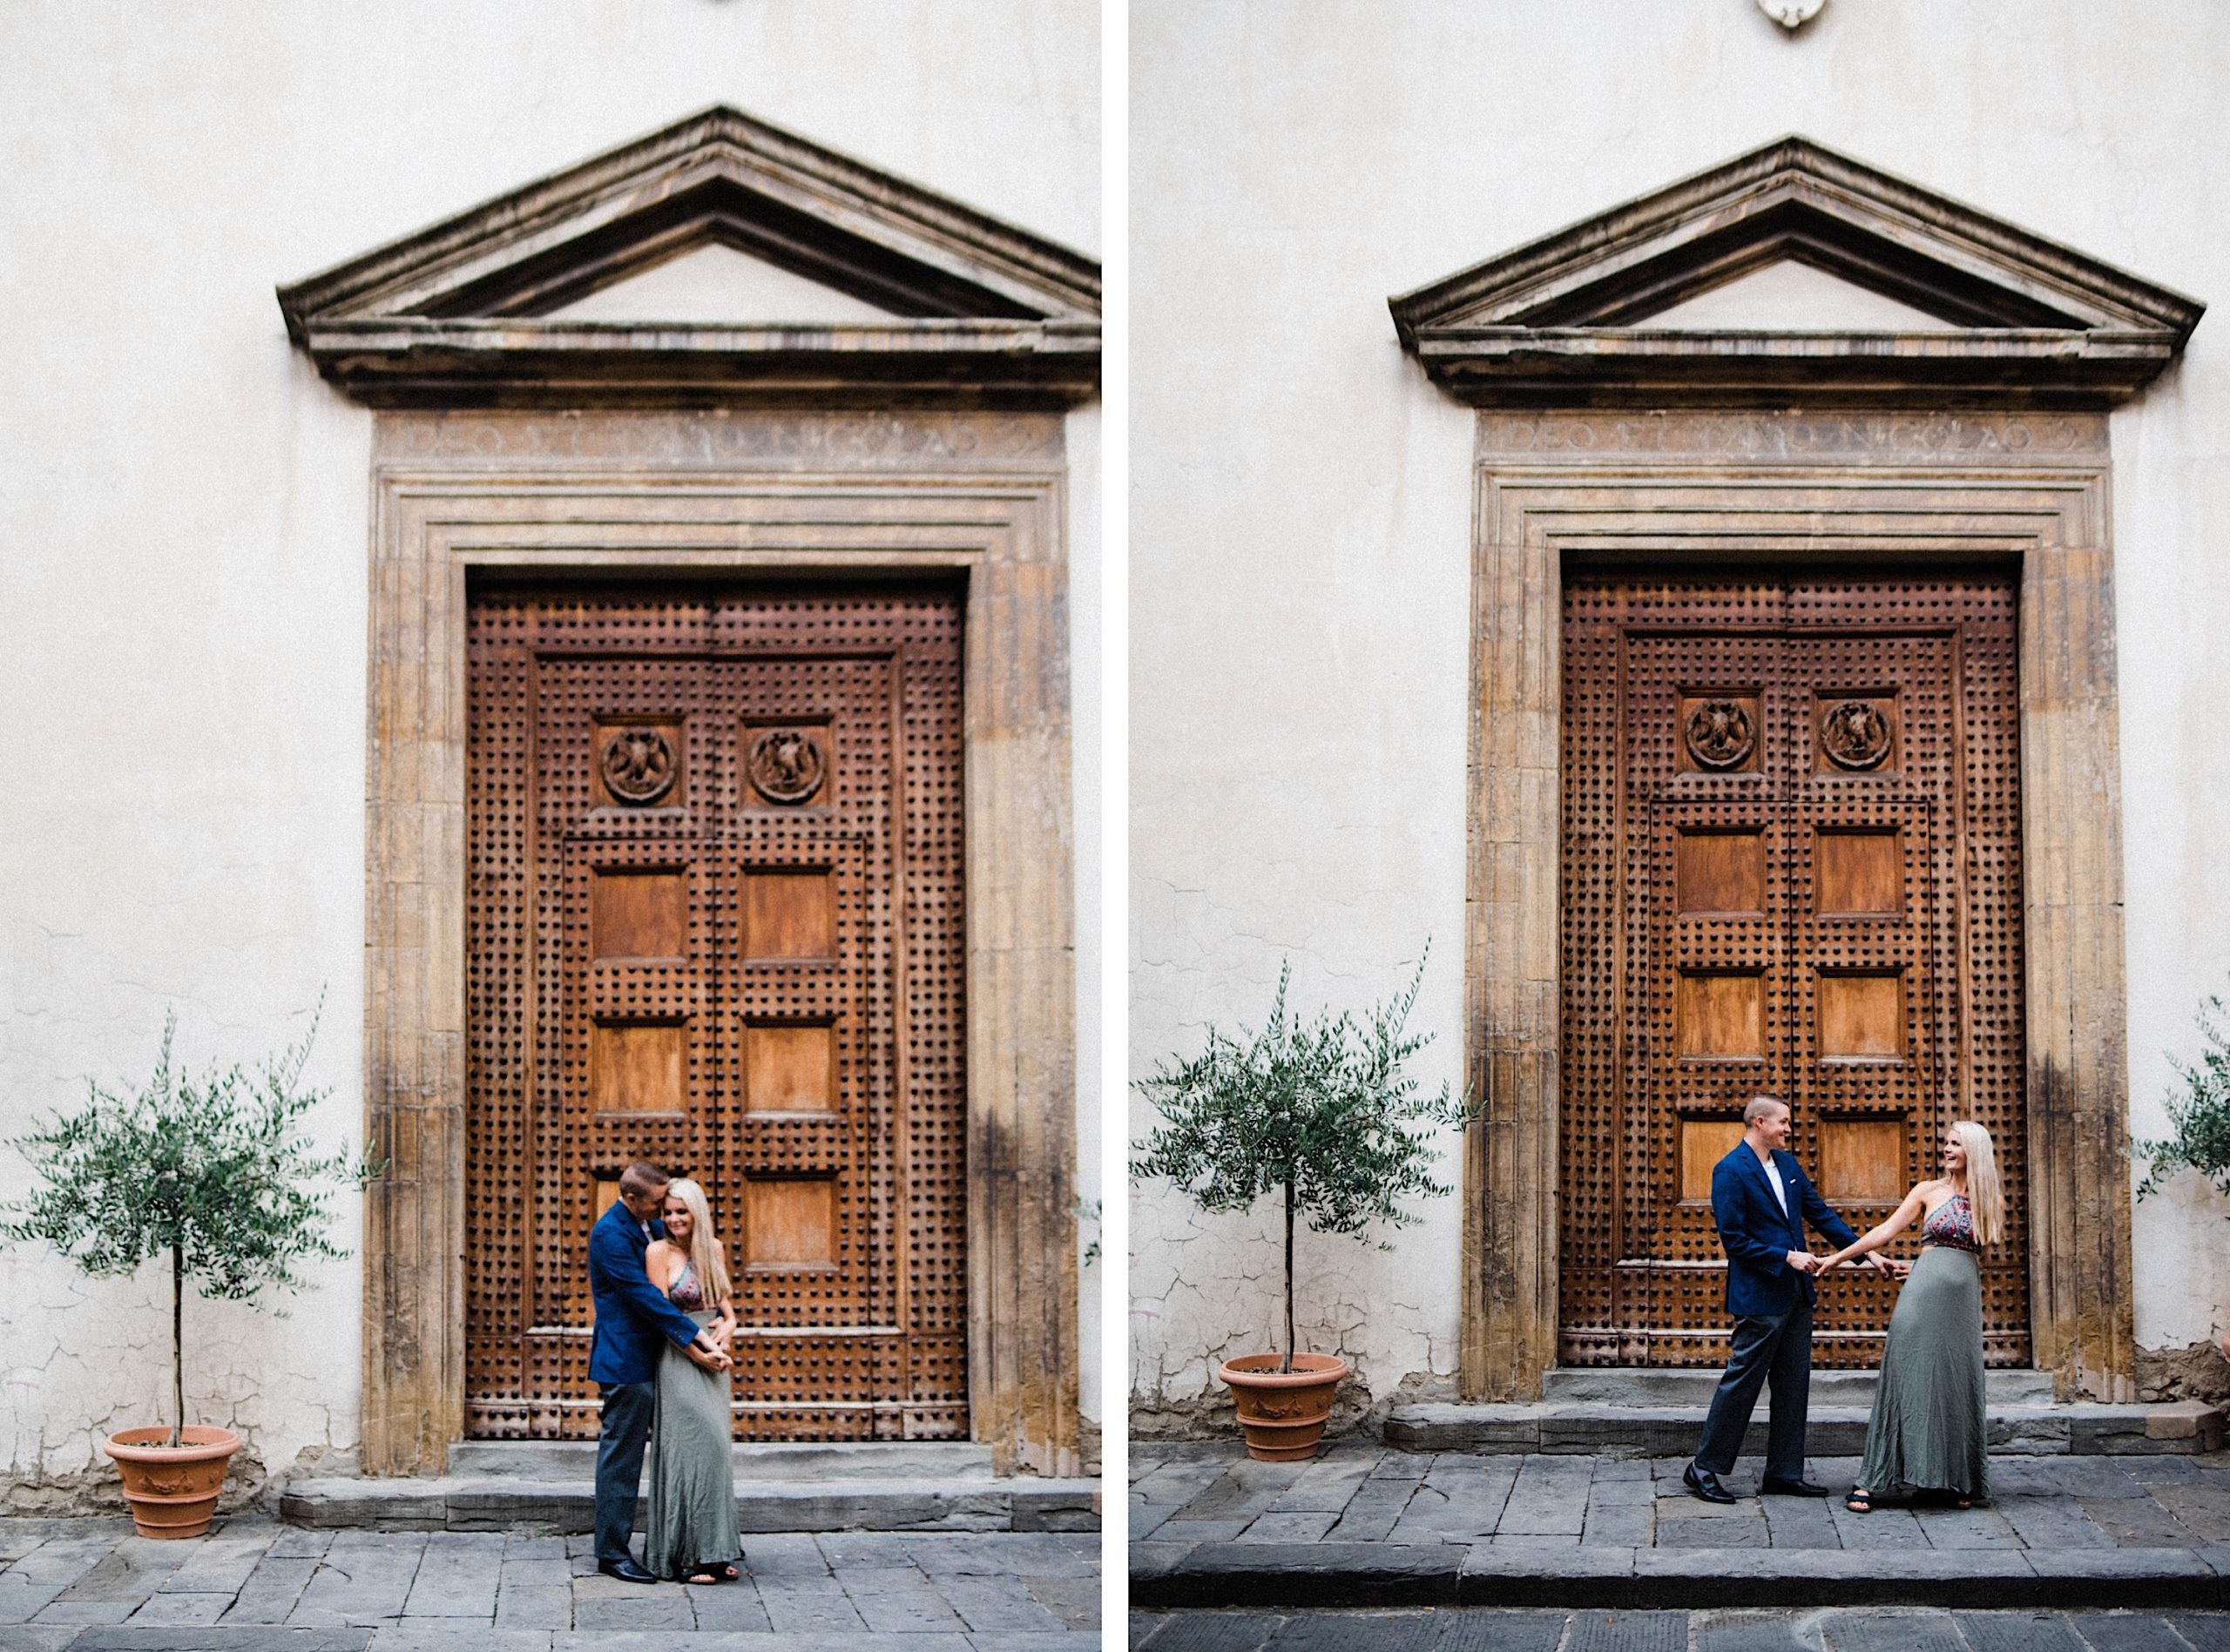 Florence Anniversary Photography of a couple standing in front of an epic, imposing wooden door, with olive trees on either side, in the back streets of Florence.